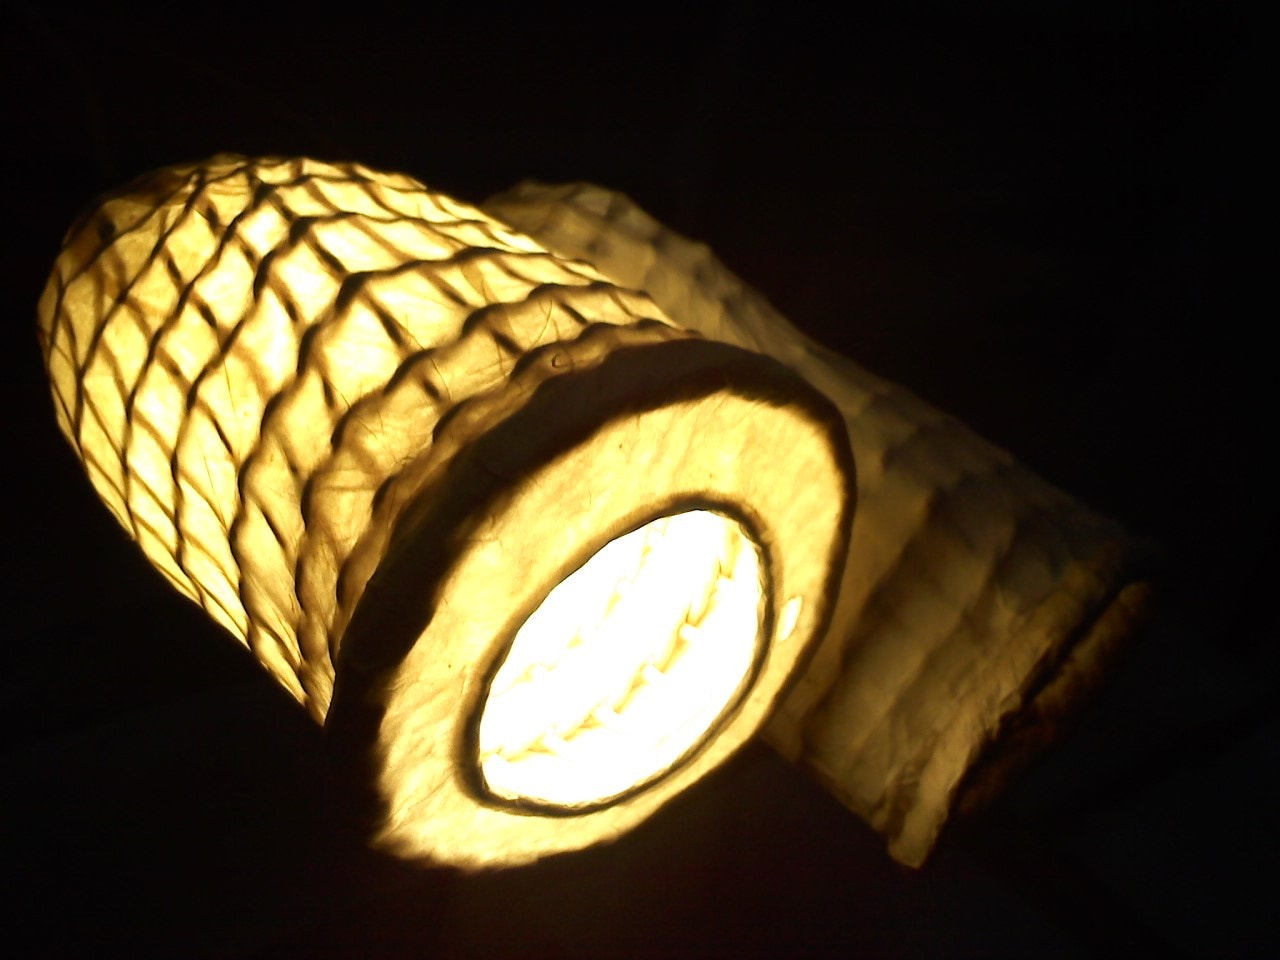 Photograph lamp by geuru on 500px